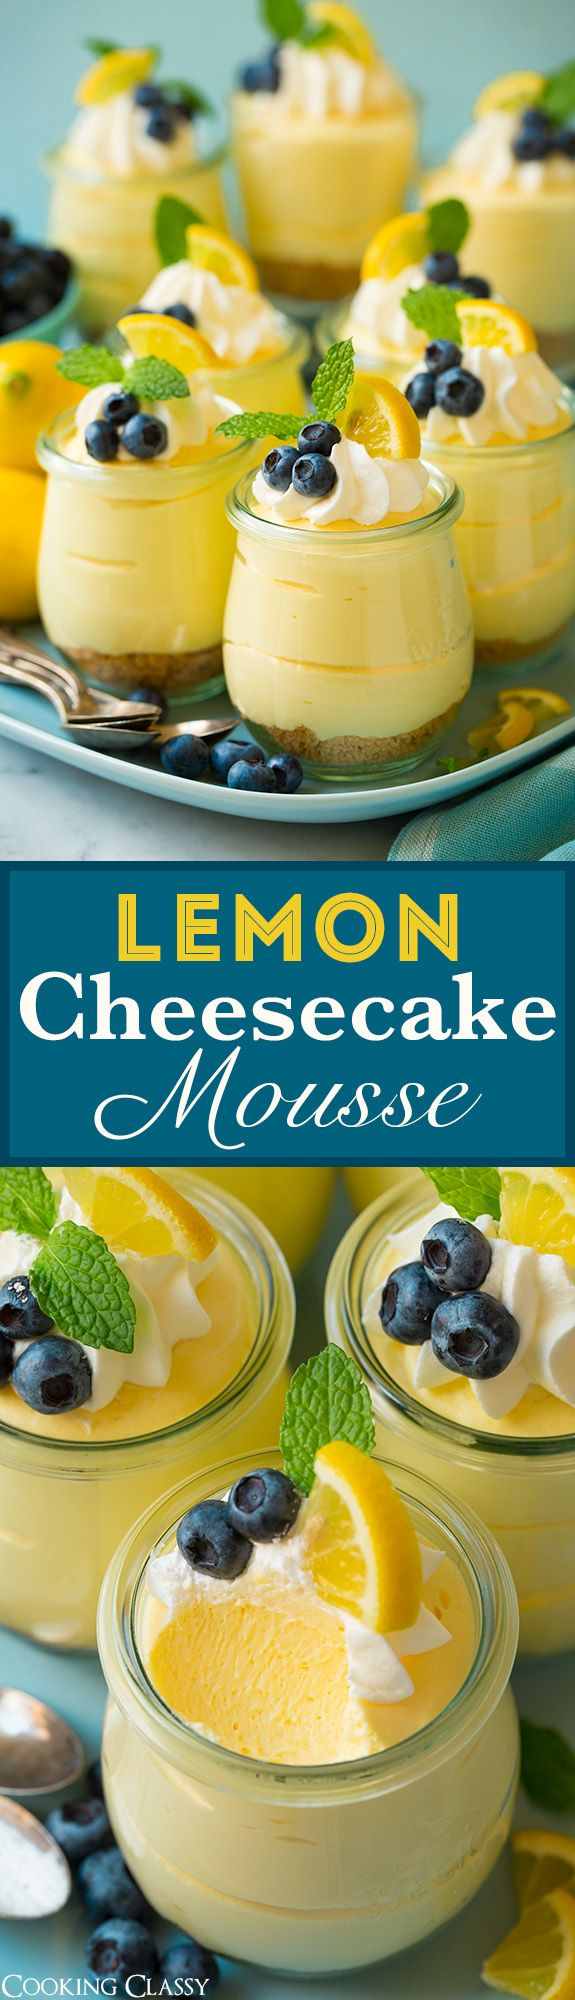 Lemon Cheesecake Mousse - the ULTIMATE spring dessert! These are to die for! No one can stop at one bite! (Sweet Recipes For One)